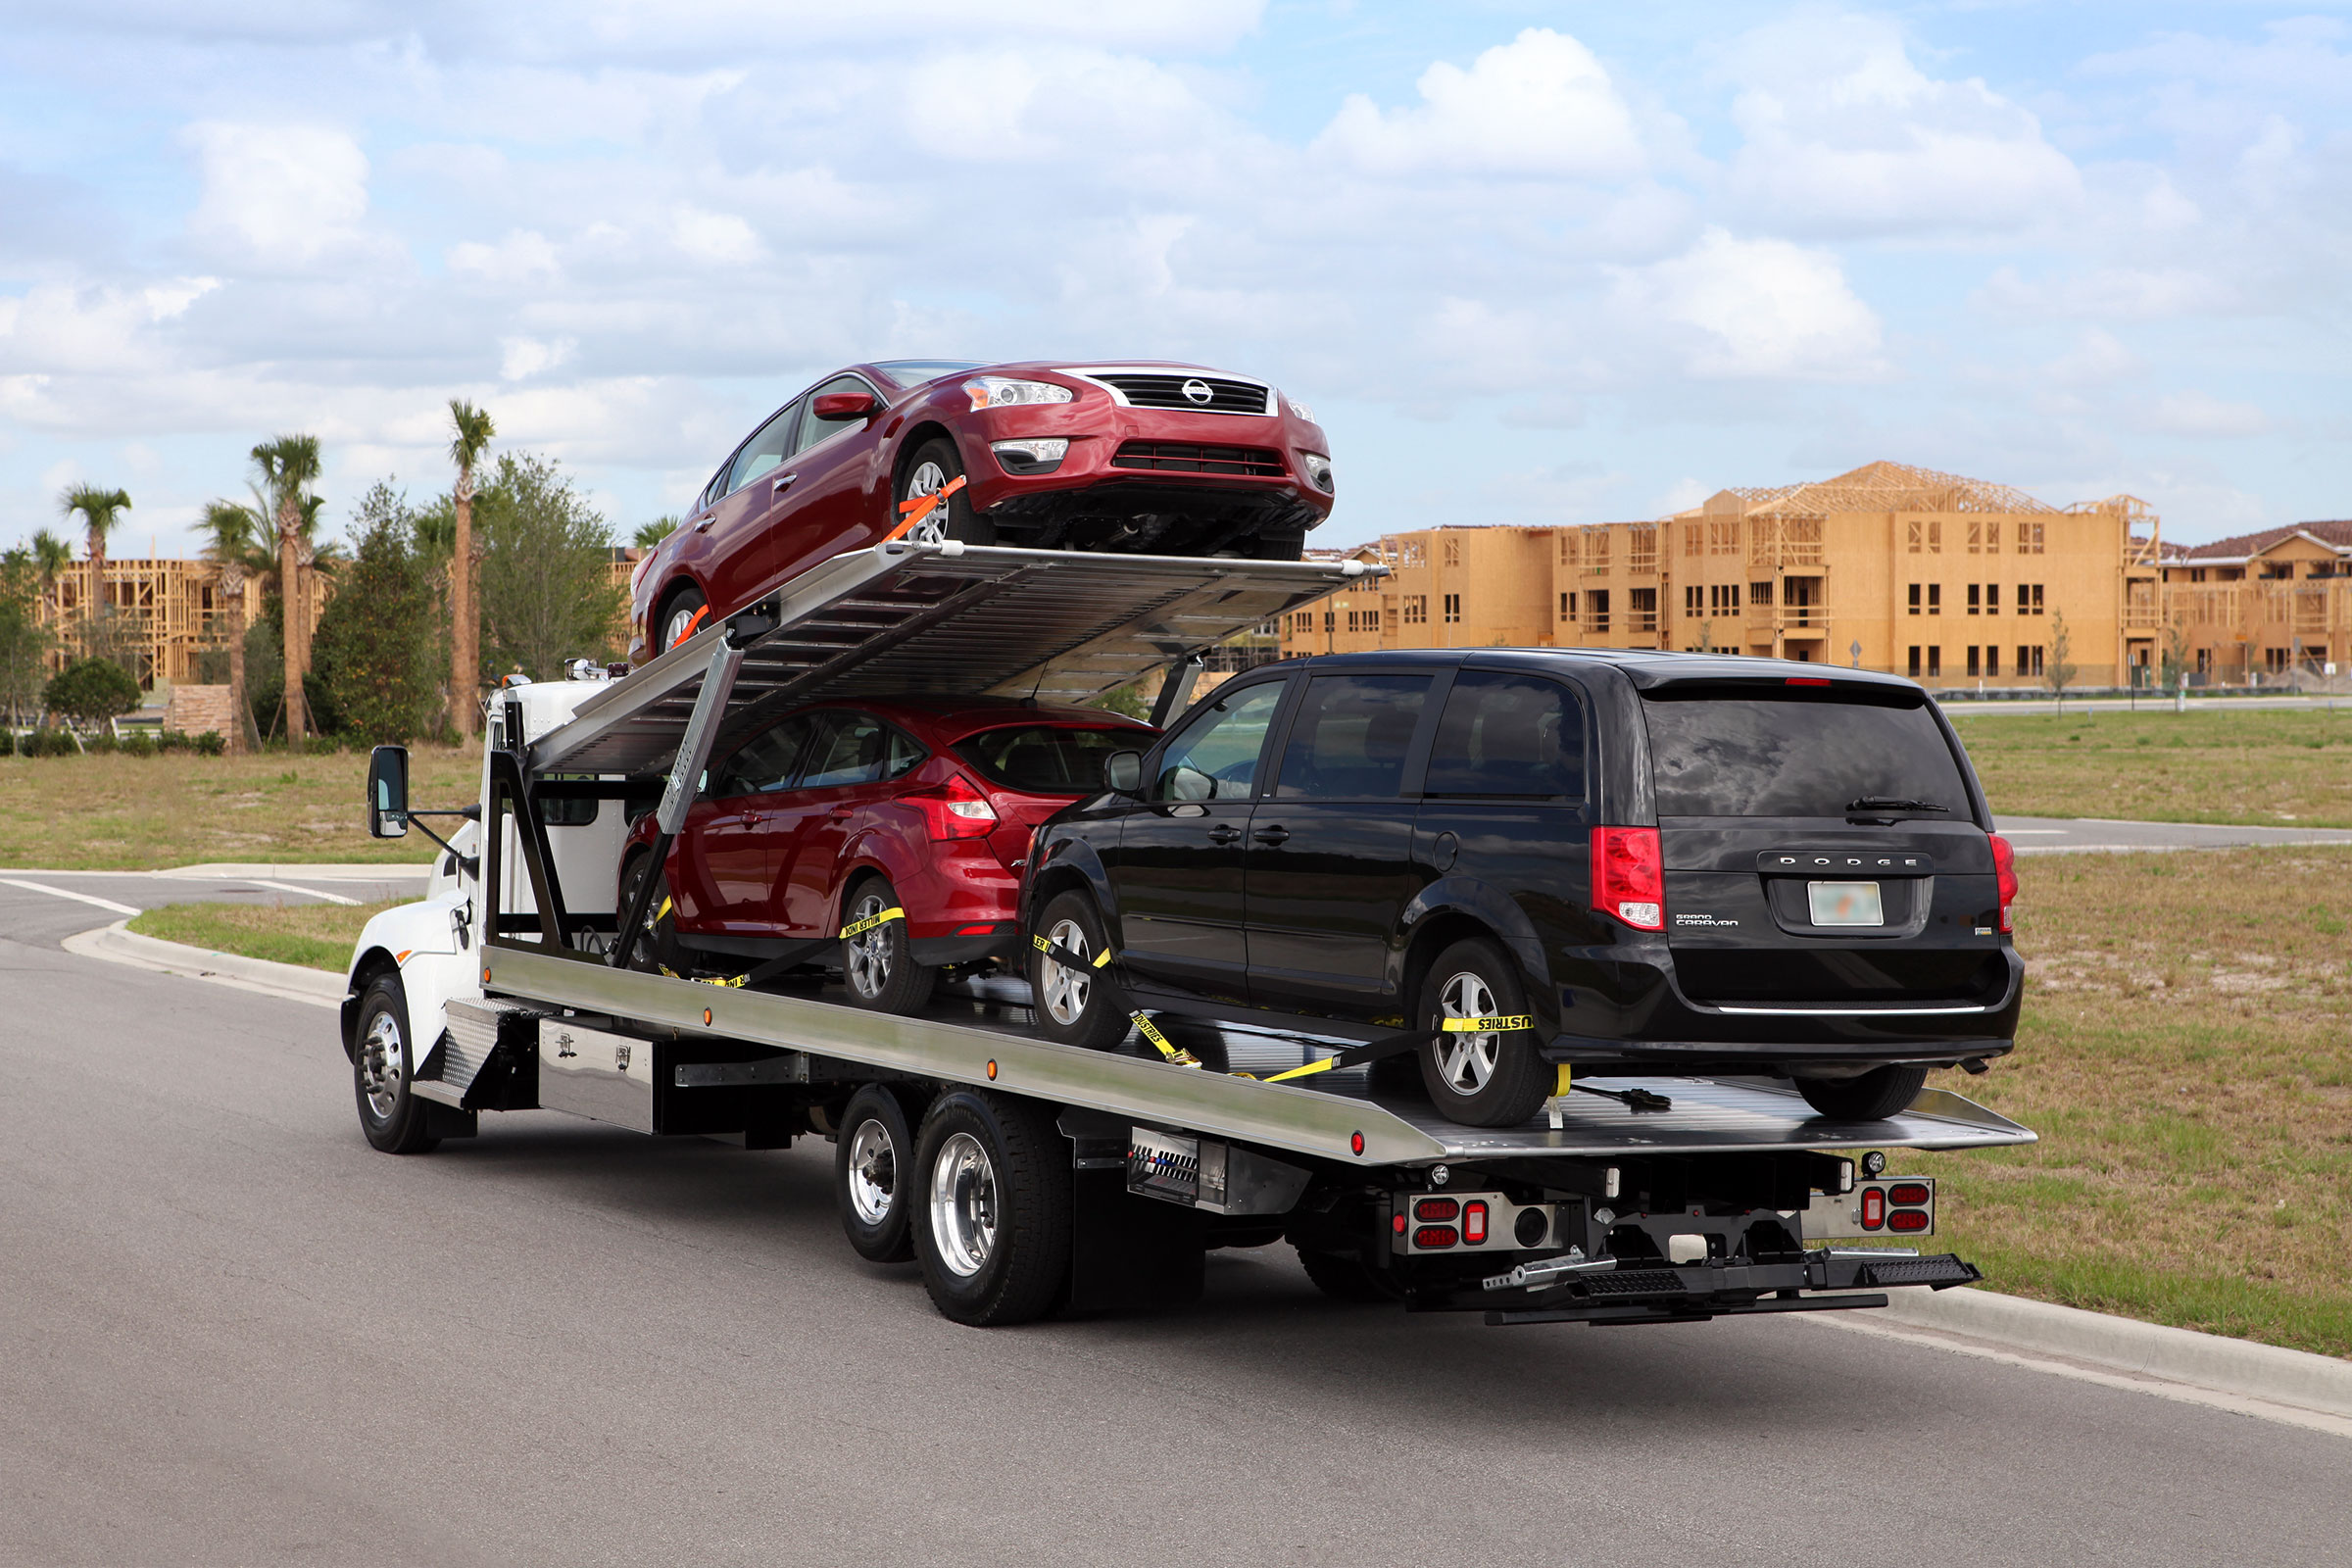 Car Carriers 3 & 4 Car Vulcan Vulcan 16 Series Multi-Deck LCG™ Car Carrier